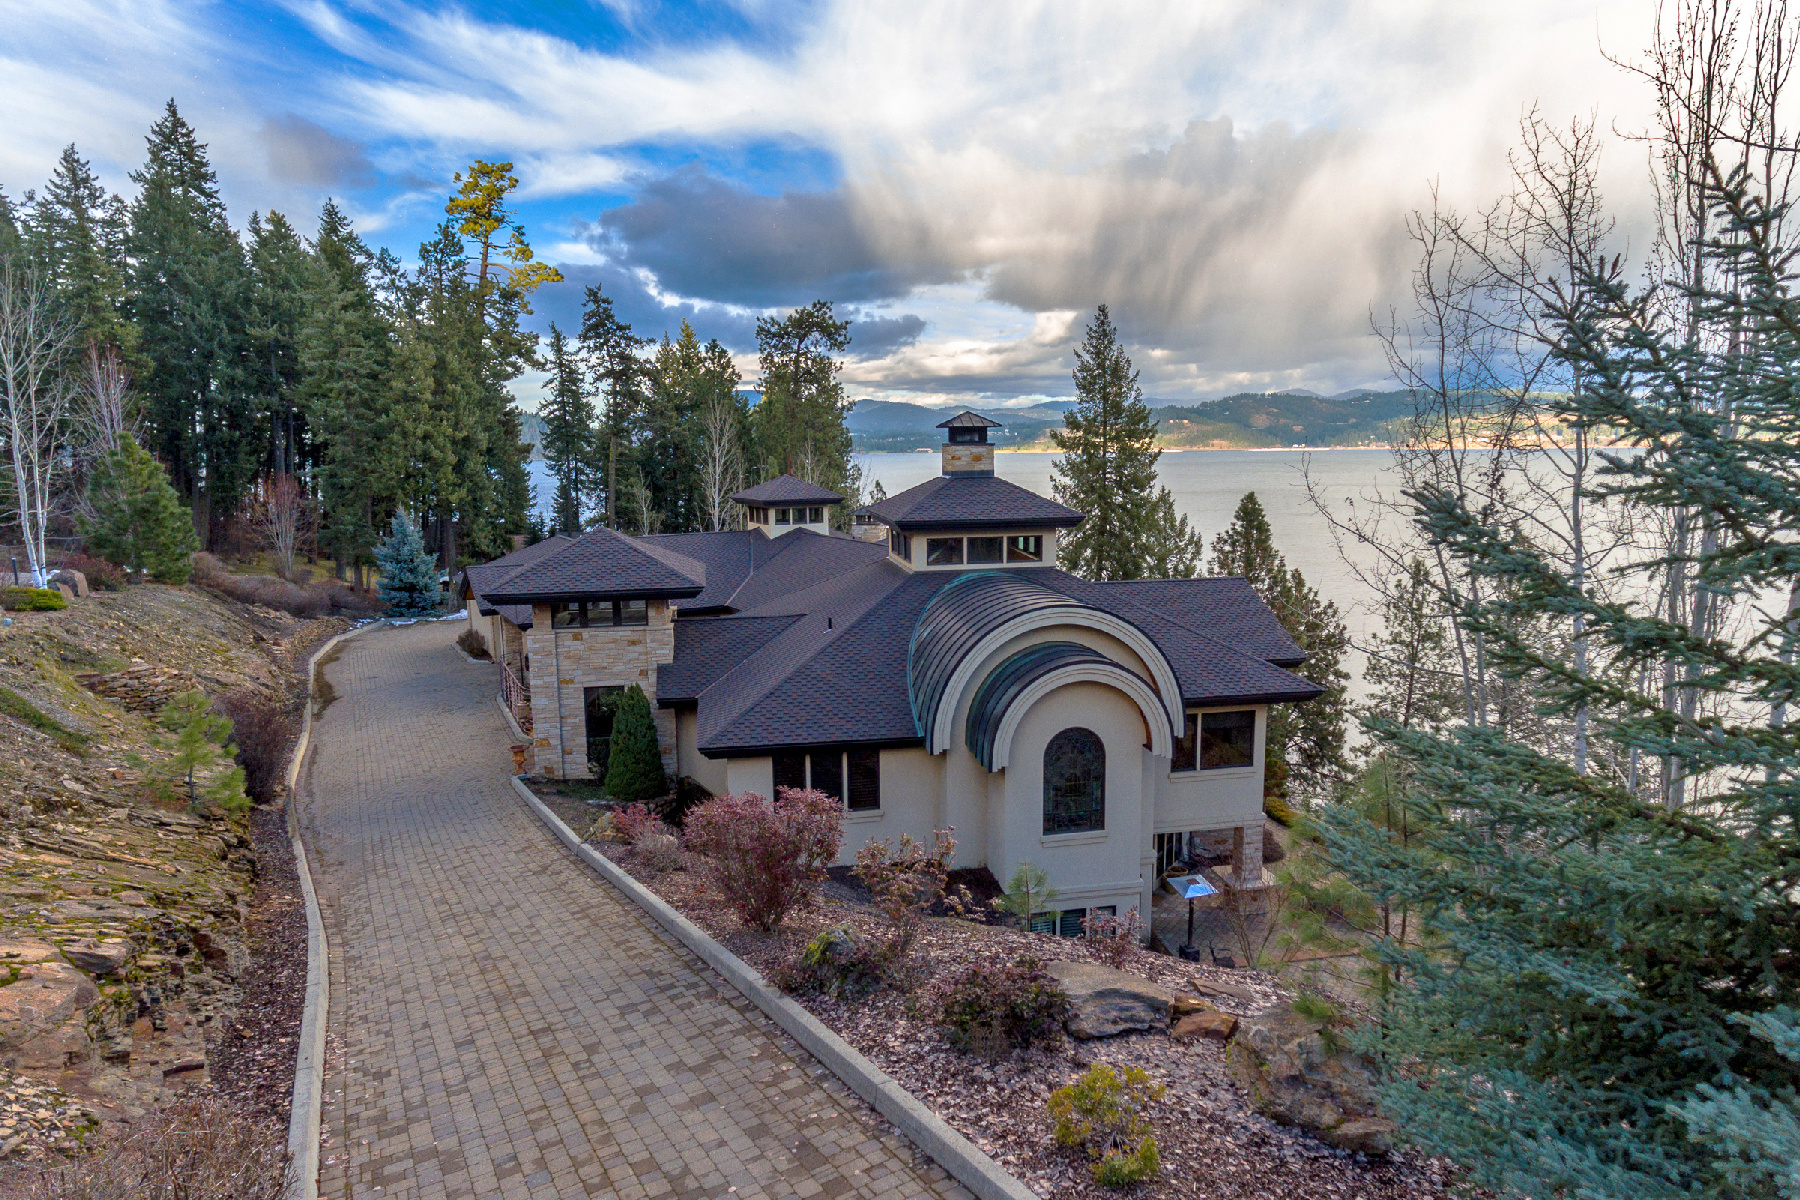 Single Family Homes for Sale at Jewel on the Lake 4200 S Threemile Point Rd Coeur D Alene, Idaho 83814 United States